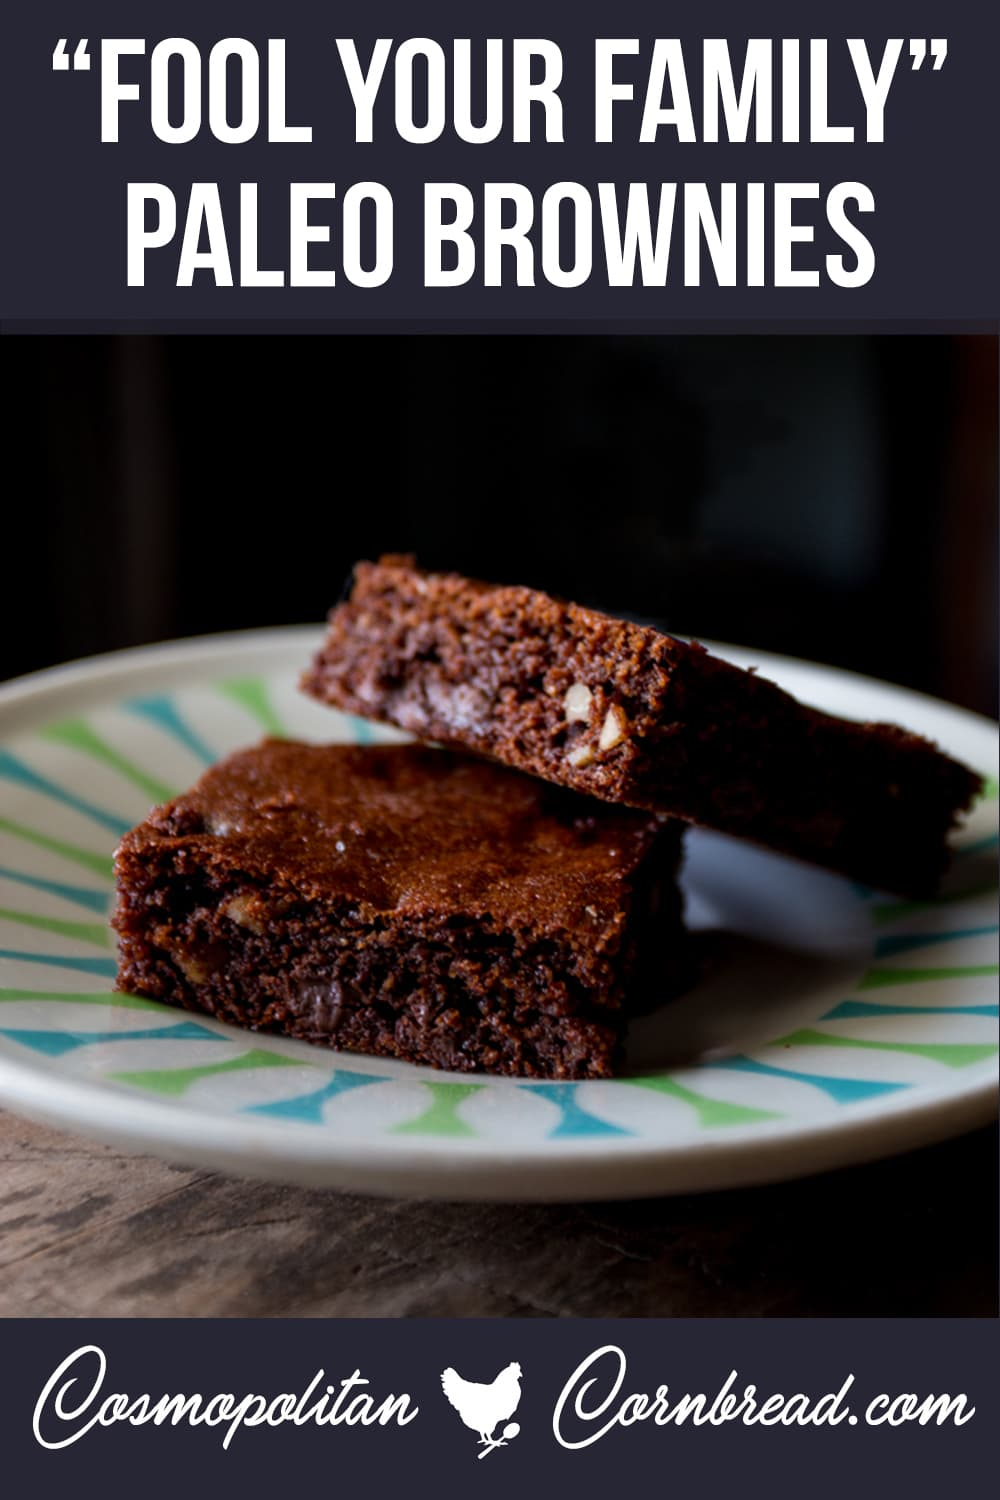 """These PALEO brownies are so good, you will absolutely fool your friends and family into thinking that you accidentally made """"regular"""" brownies. There's no mistaking how good these are."""